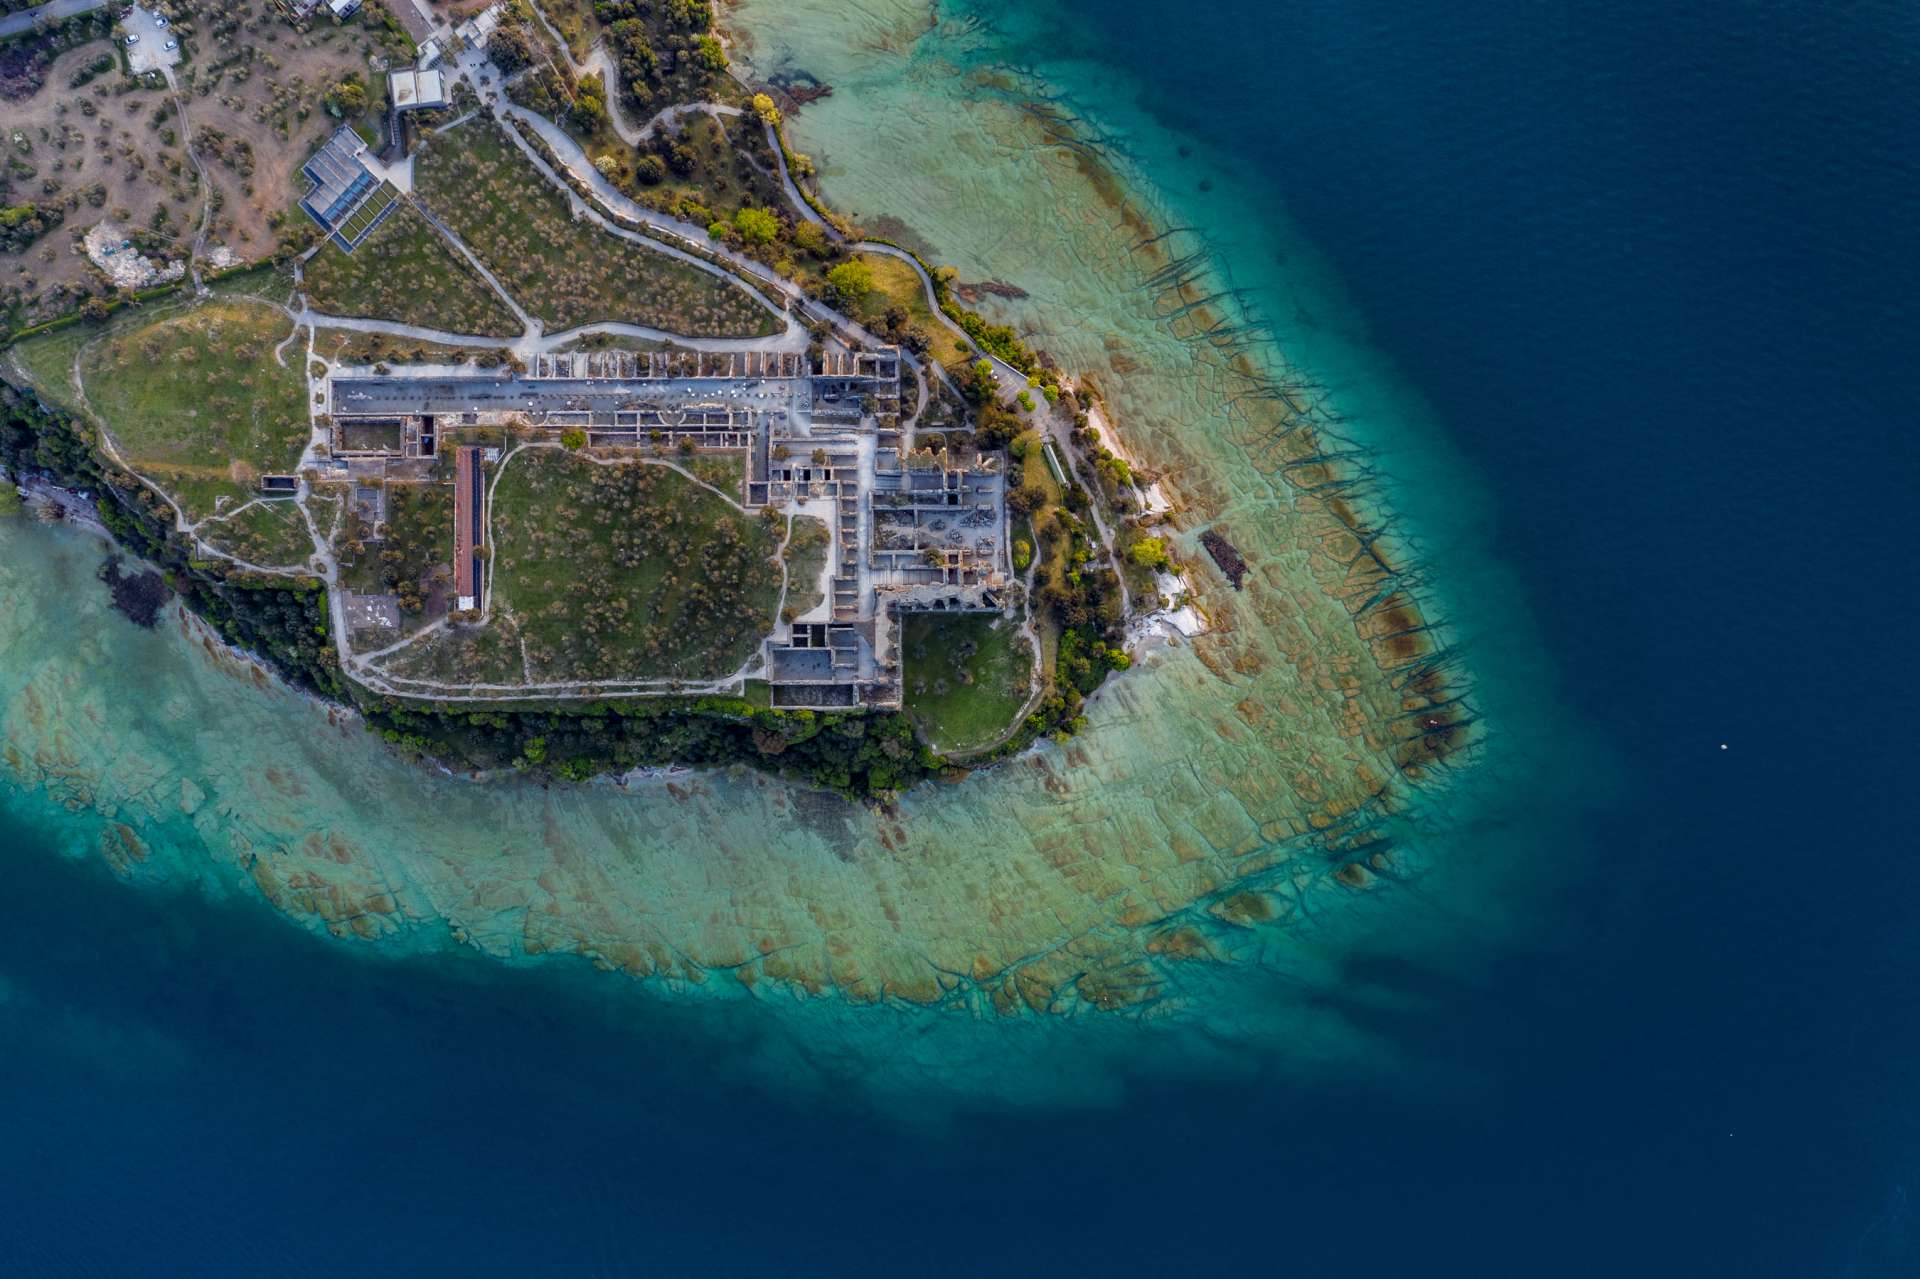 Grotto of Catullus Sirmione Lake of Garda Aerial Drone View